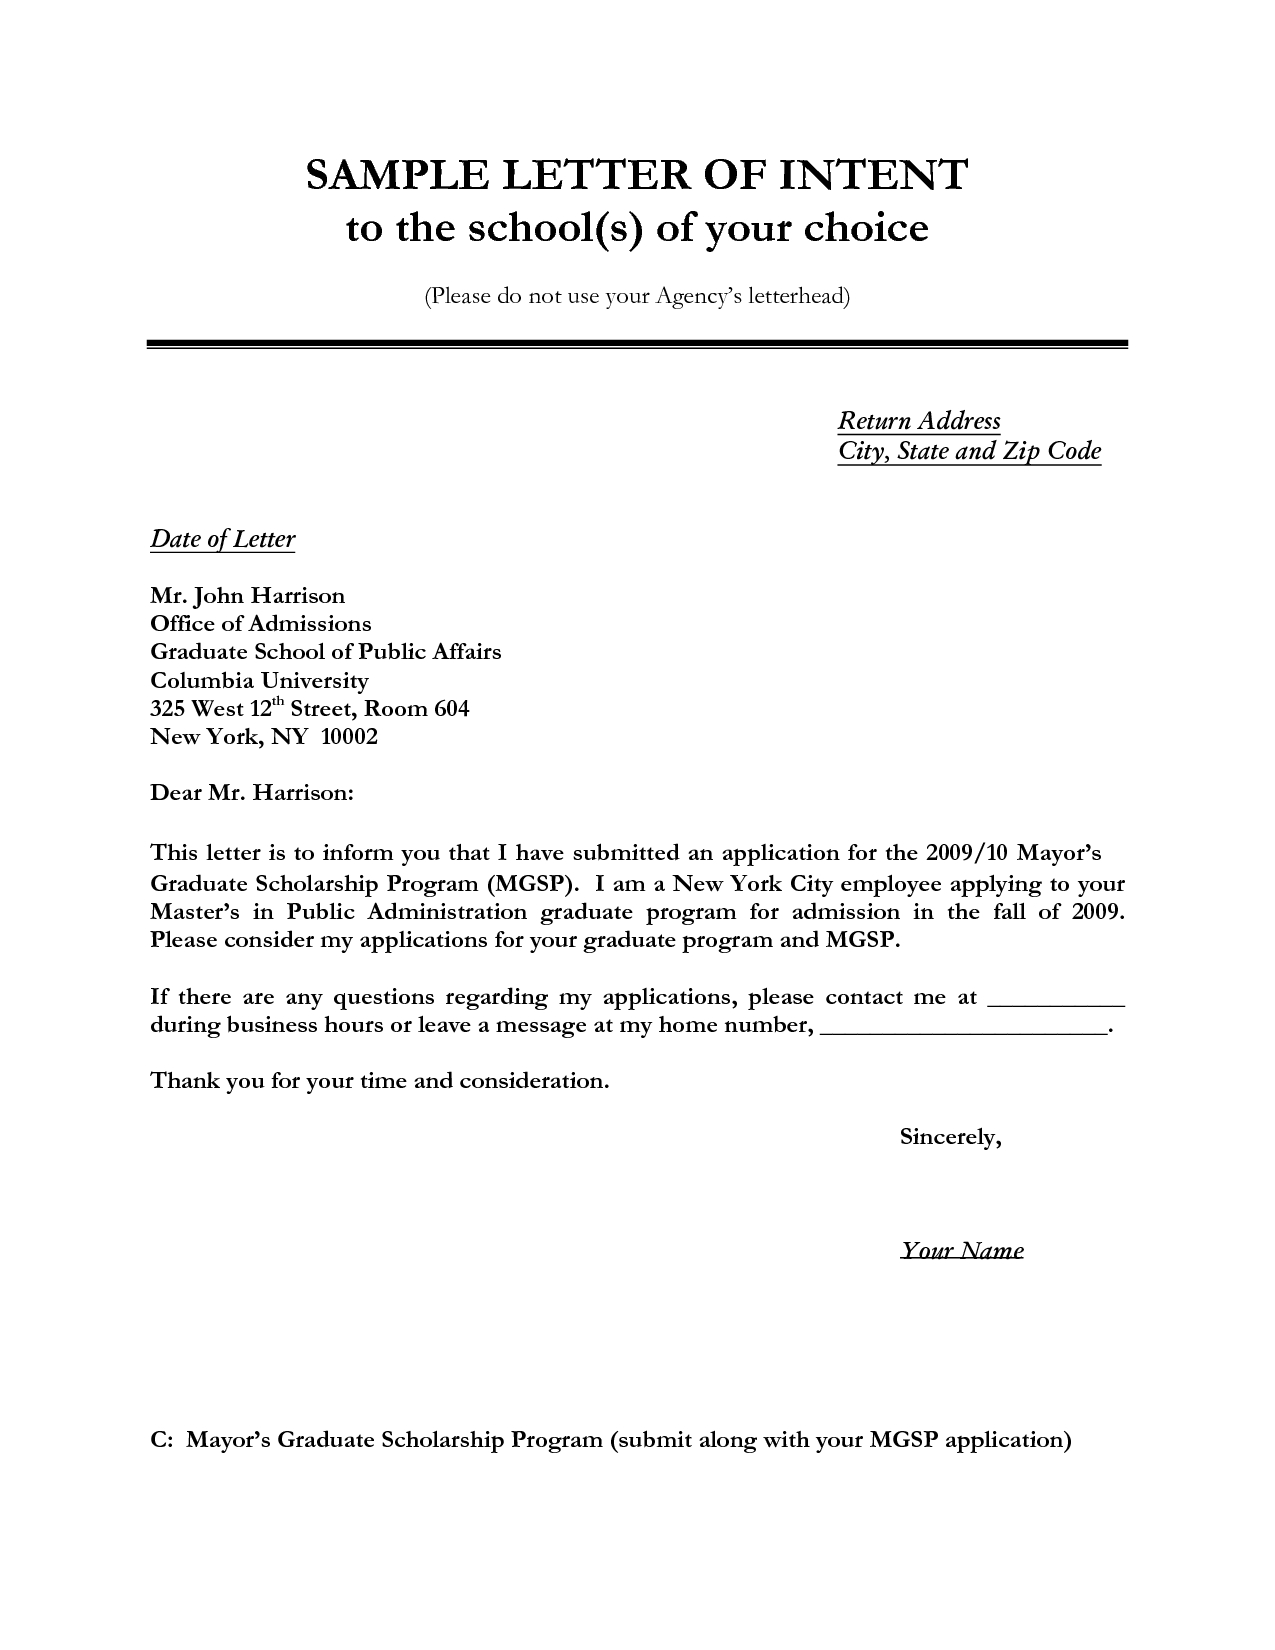 Commercial Real Estate Letter Of Intent to Purchase Template - Letter Of Intent Sample